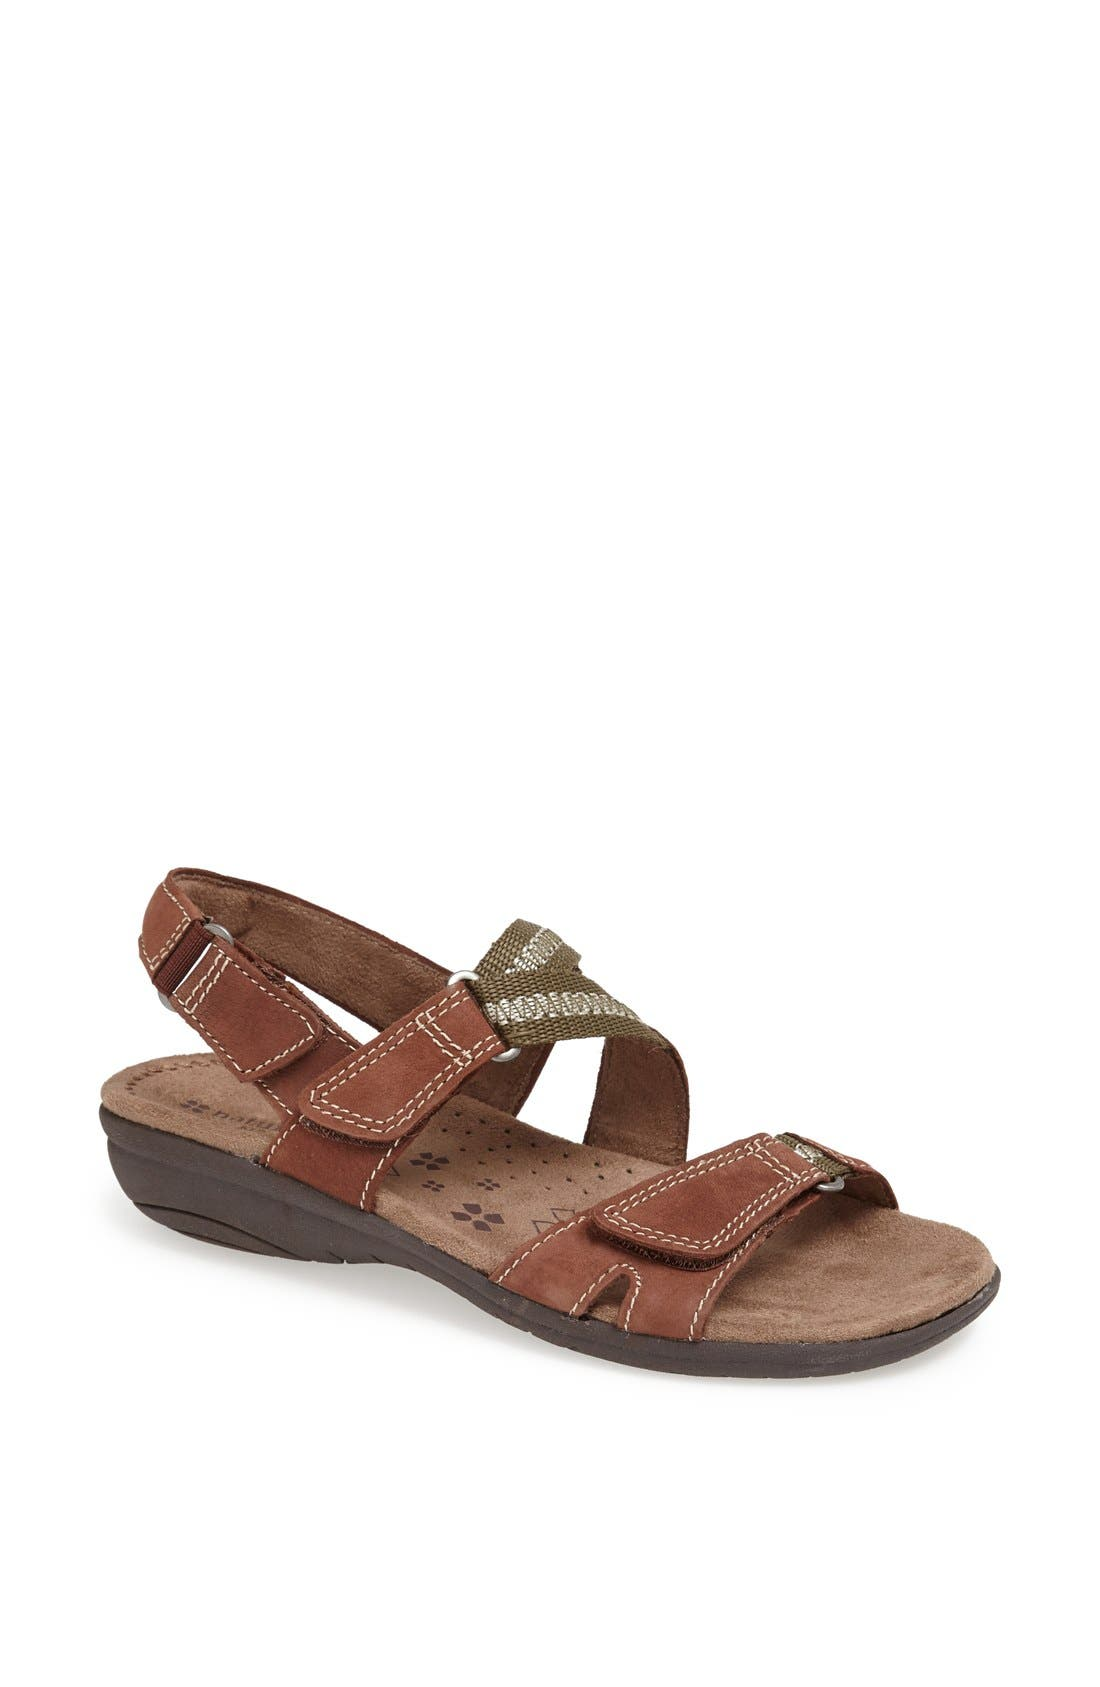 Alternate Image 1 Selected - Naturalizer 'Valero' Sandal